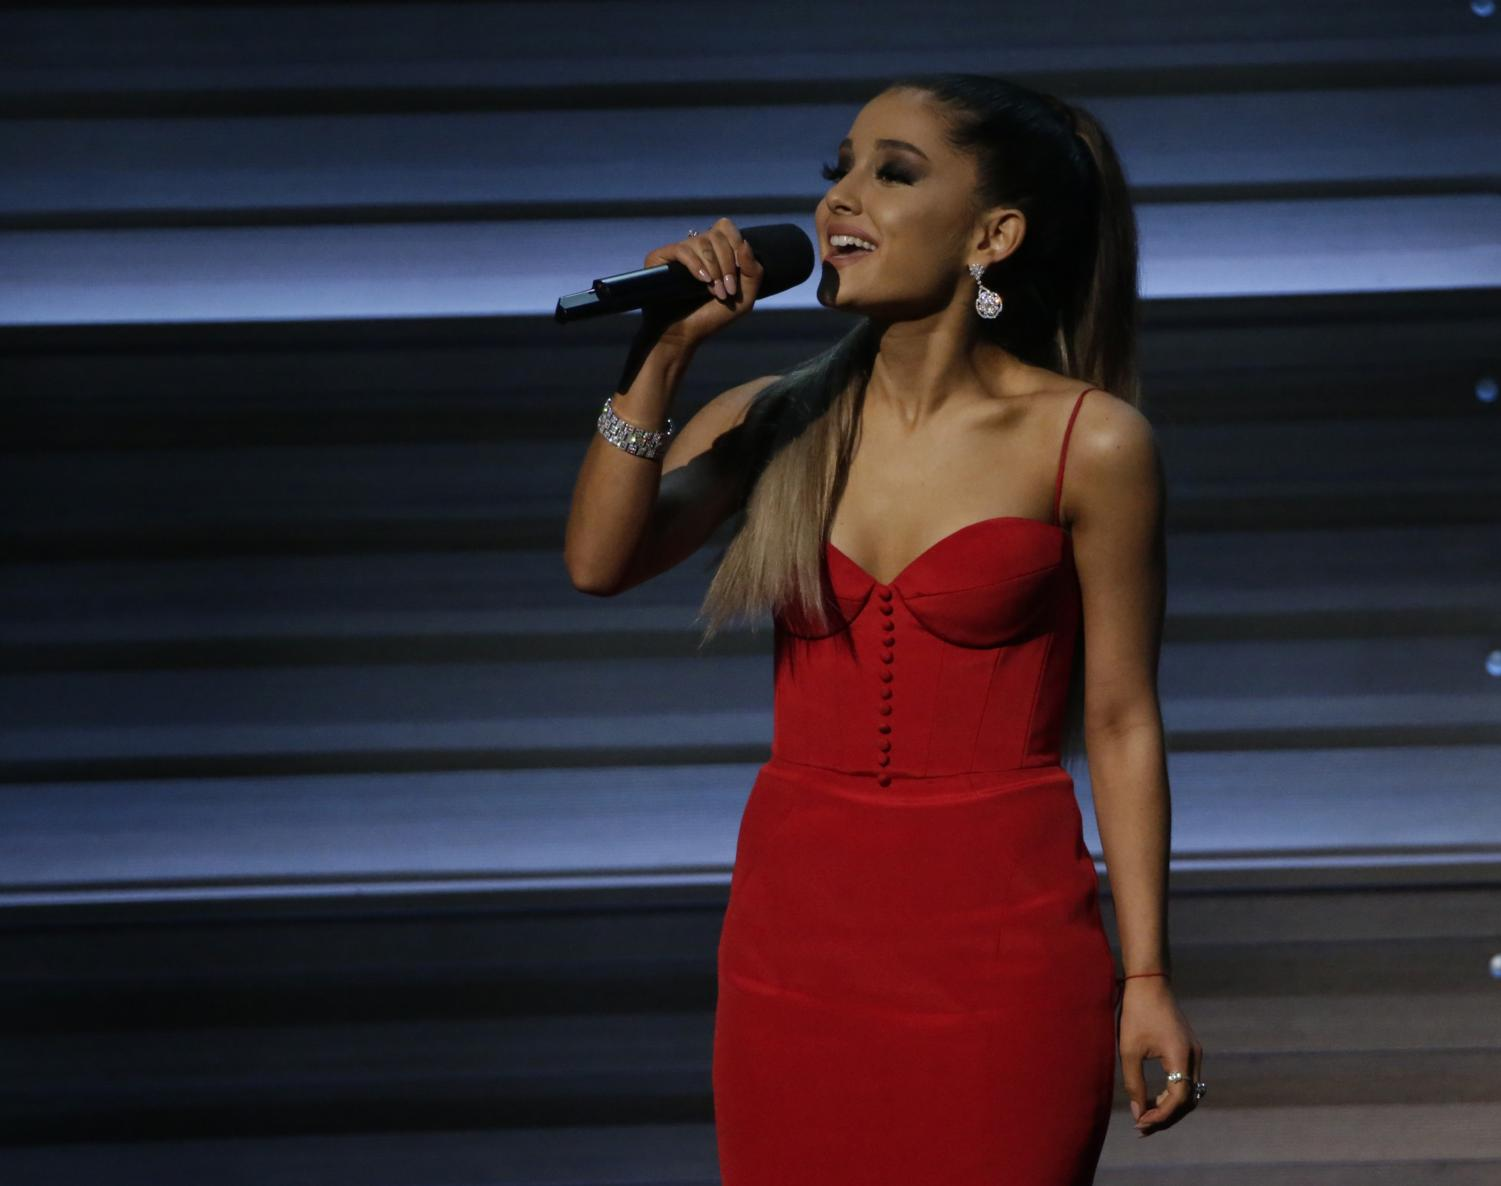 Ariana Grande introduces The Weekend at the 58th Annual Grammy Awards on Feb. 15, 2016 in Los Angeles. Grande is holding a benefit concert in Manchester after this week's attack. (Robert Gauthier / Los Angeles Times)